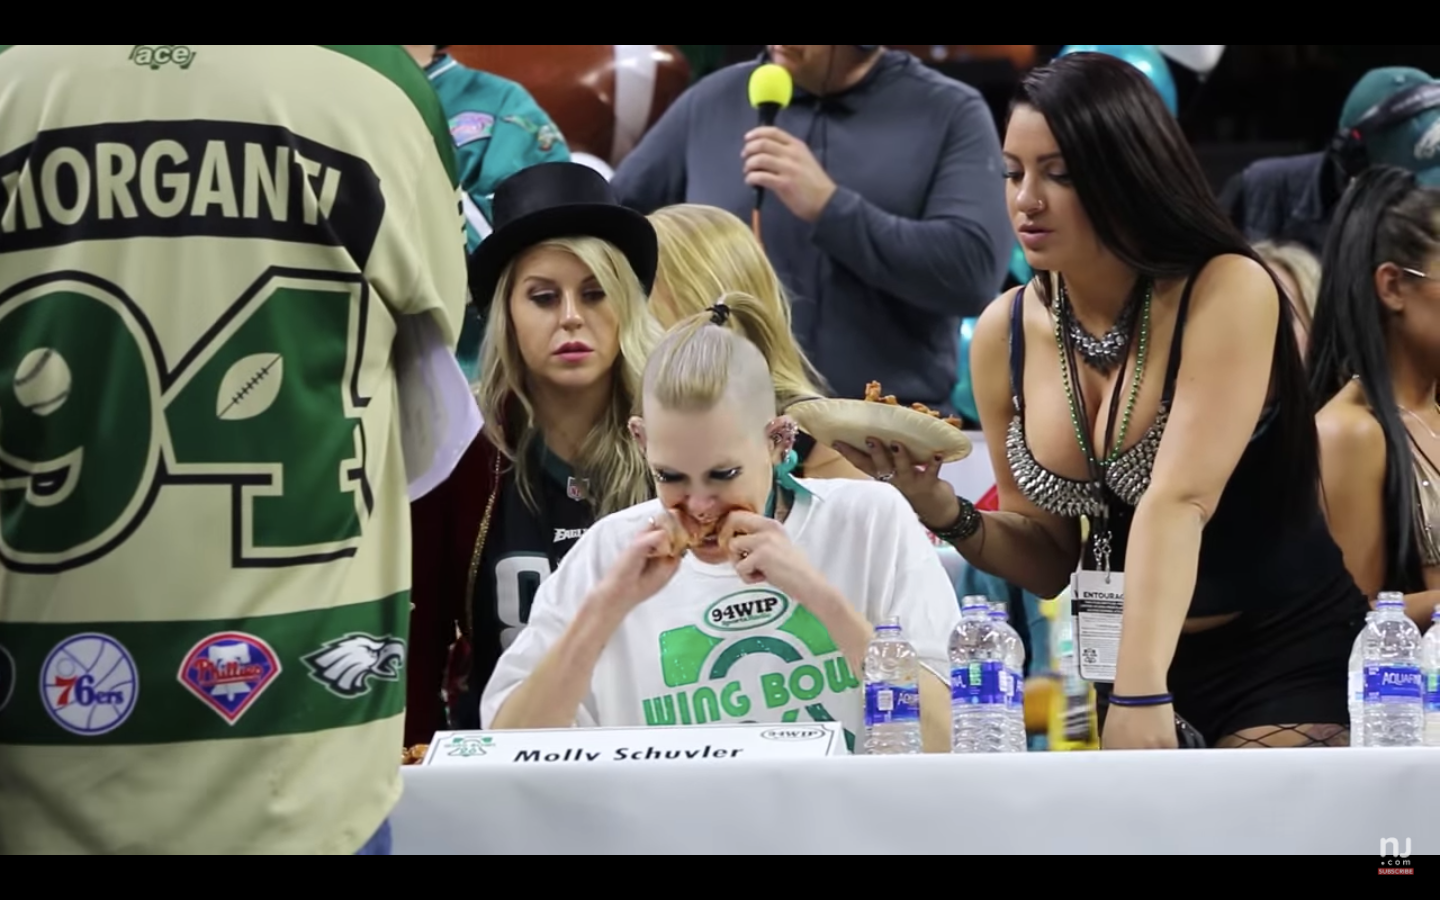 Wing bowl 22 prizes for baby